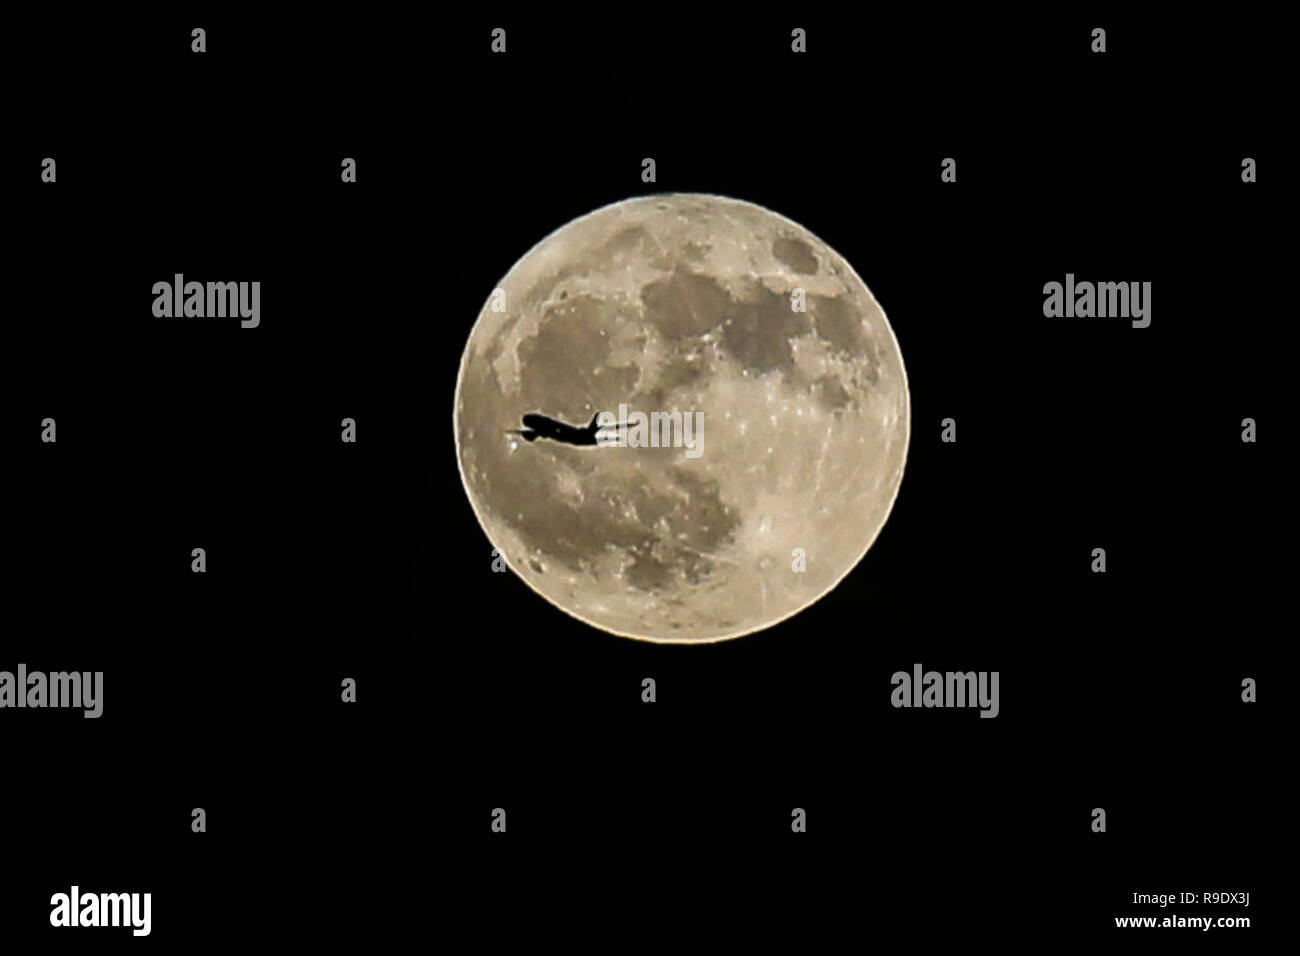 An airplane flies in front of Winter Solstice Moon over London. December's full moon has earned the nickname of the Cold Moon which falls shortly after Friday's winter solstice and the peak of the Ursid Meteor Shower - the activity that begins annually around December 17 and runs for a week plus, until the 25th or 26th. - Stock Image